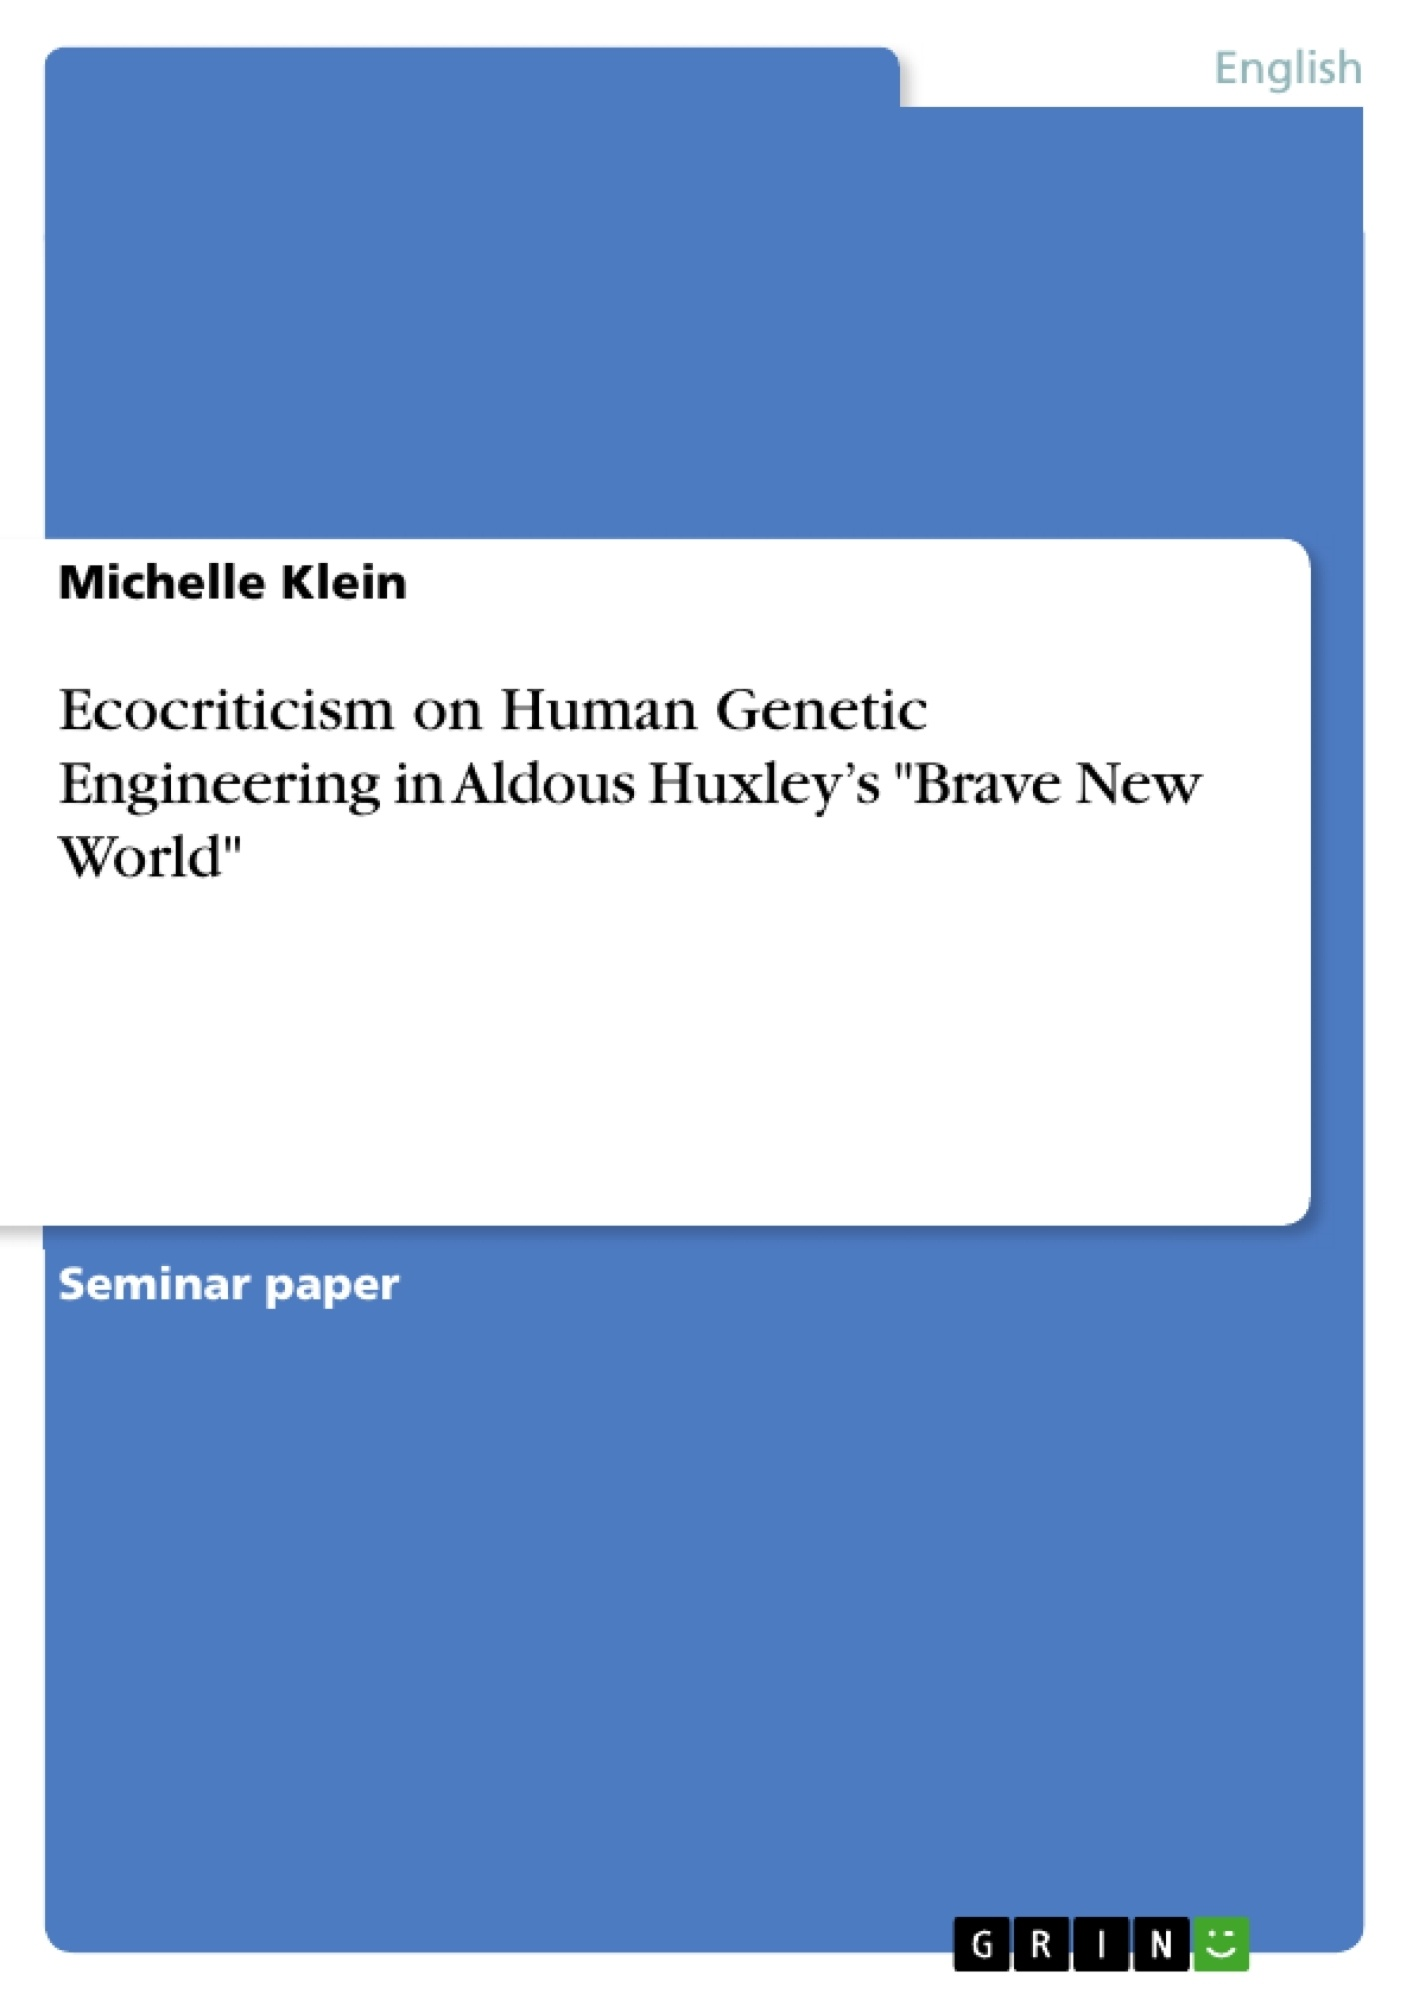 ecocriticism on human genetic engineering in aldous huxley s upload your own papers earn money and win an iphone 7